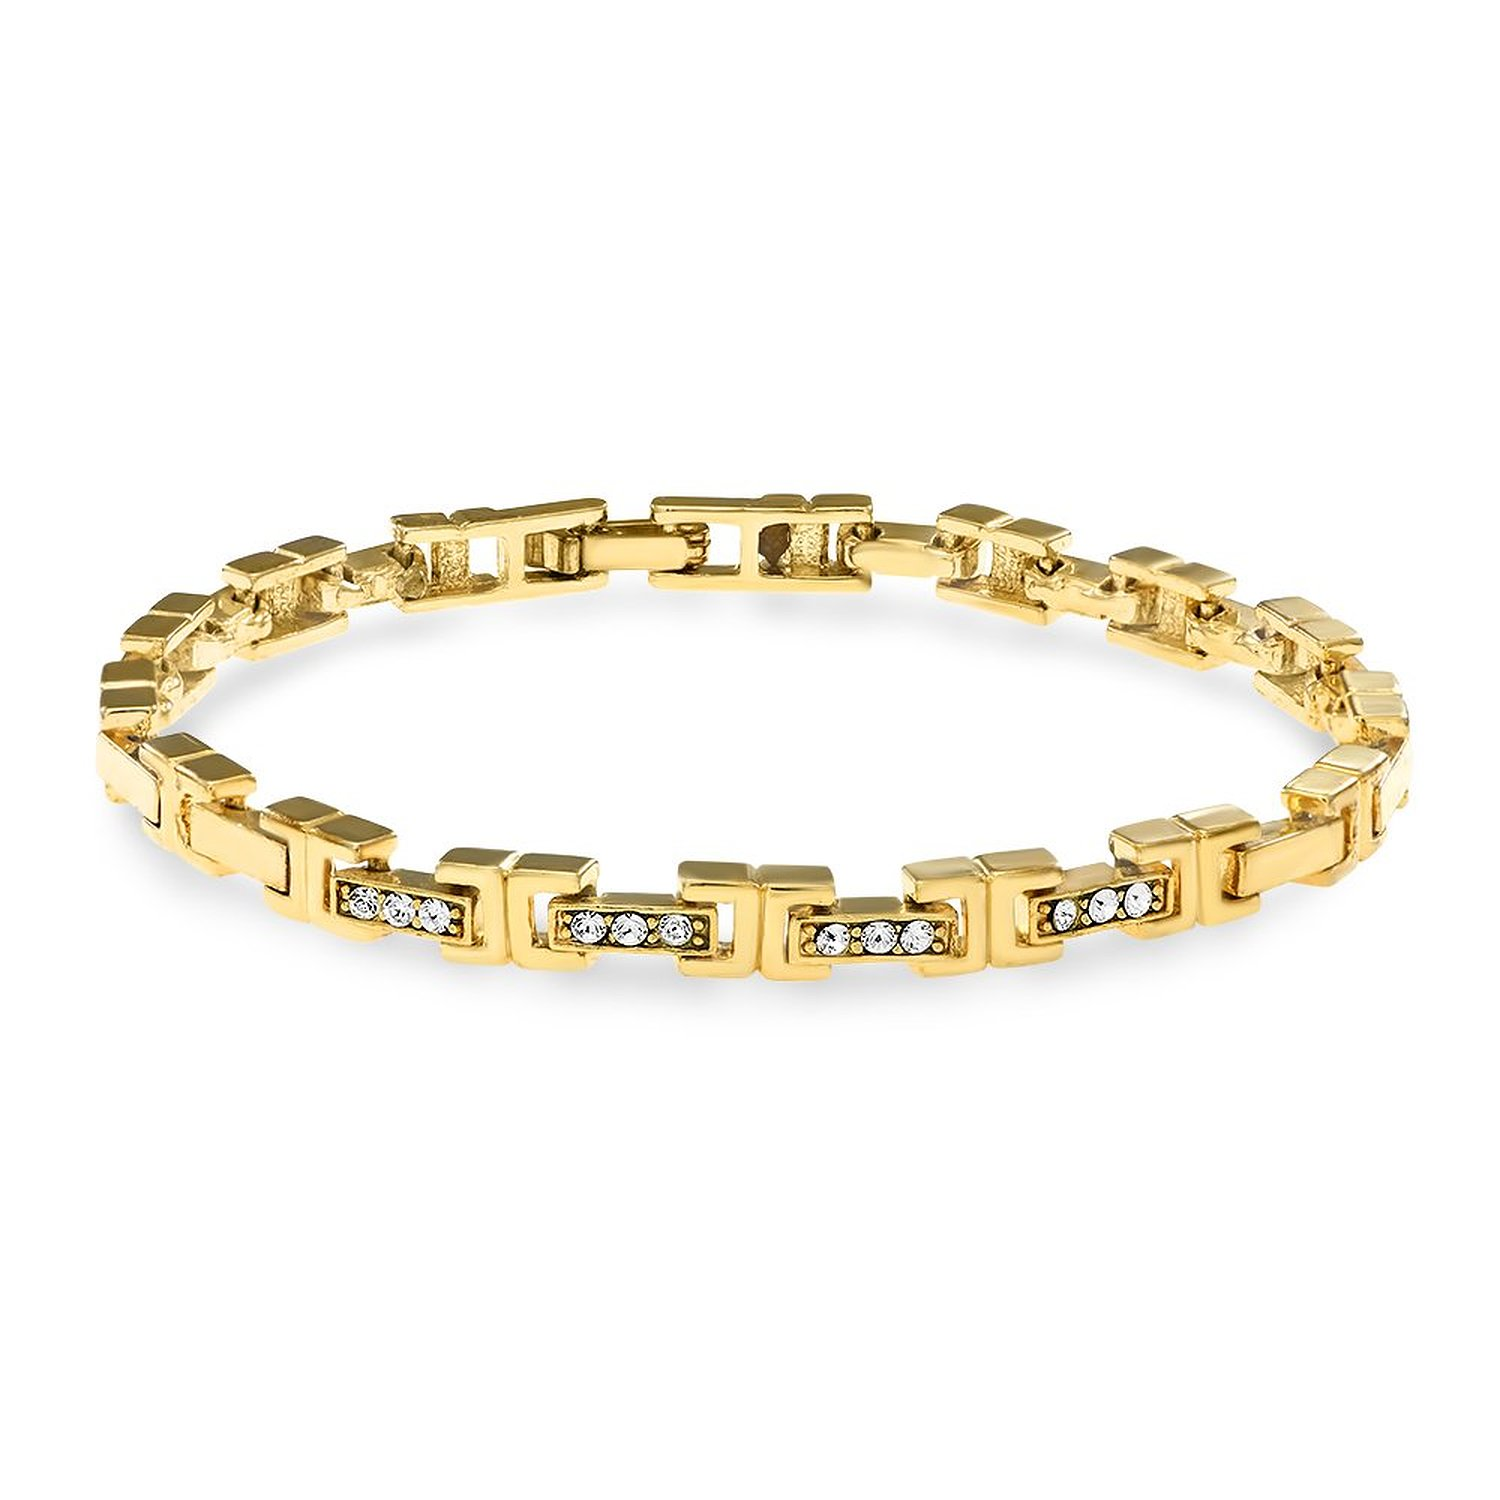 Mahi Ultimate Alloy 24K Yellow Gold Bracelet